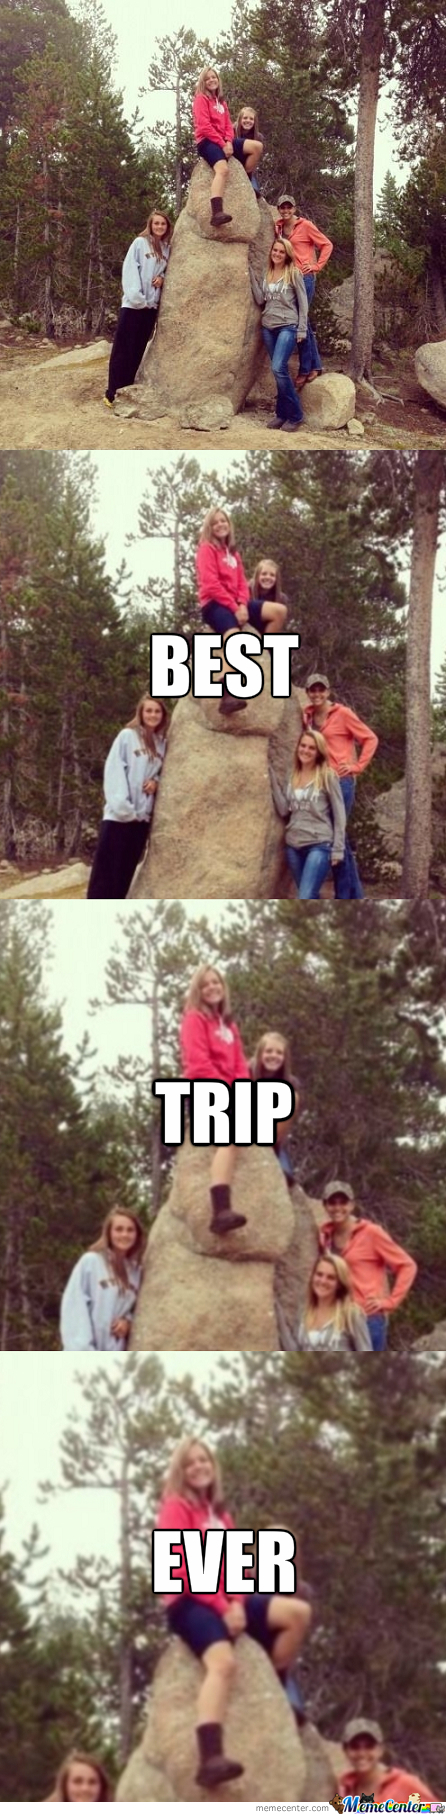 Best Trip Ever